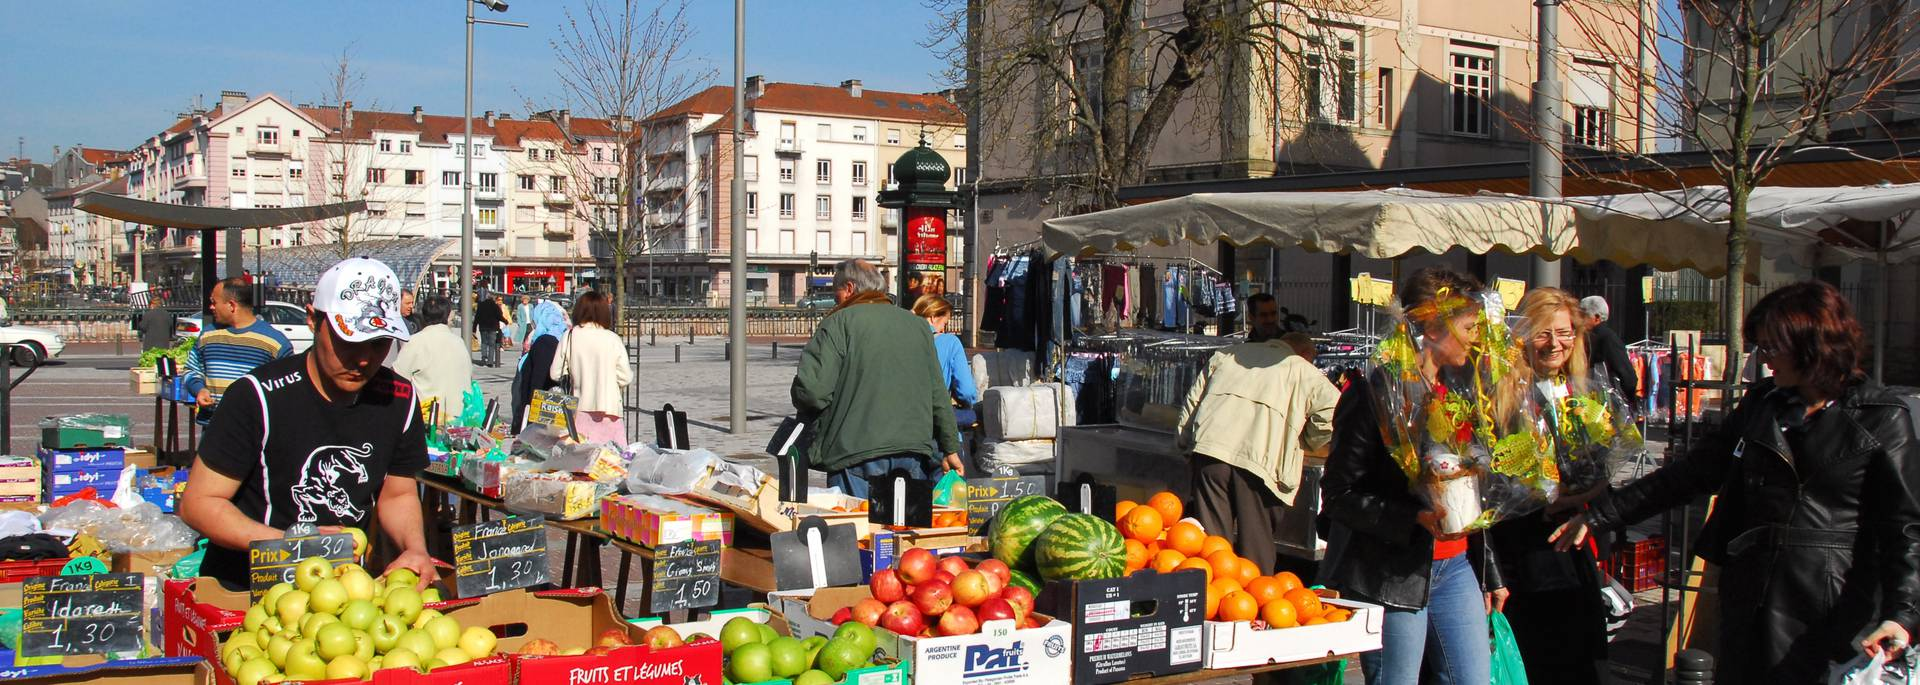 Market Epinal - Covered market - Local products - Local products - Vosges products